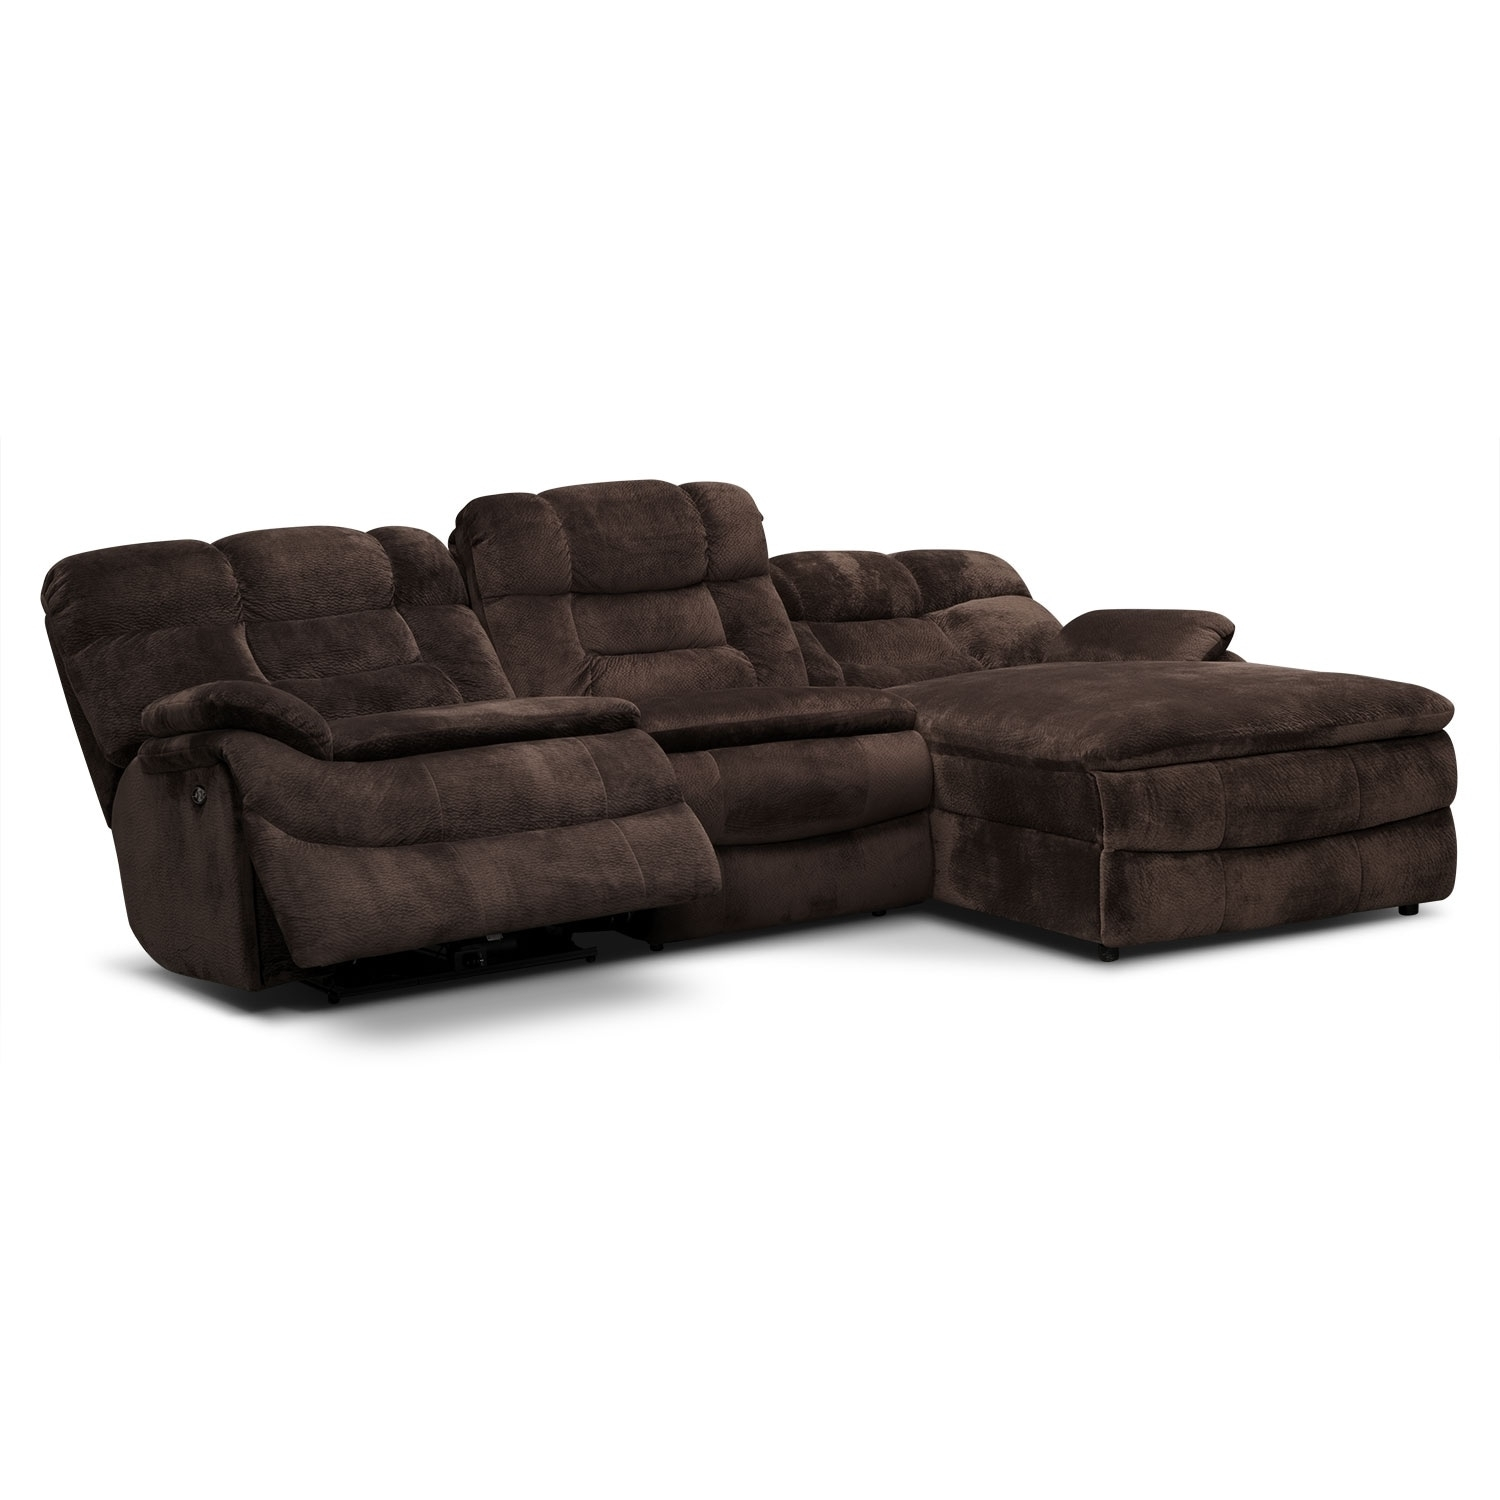 3 Pc Microfiber Sectional Sofa With Recliner And Queen Sleeper Throughout Declan 3 Piece Power Reclining Sectionals With Right Facing Console Loveseat (Photo 22 of 25)